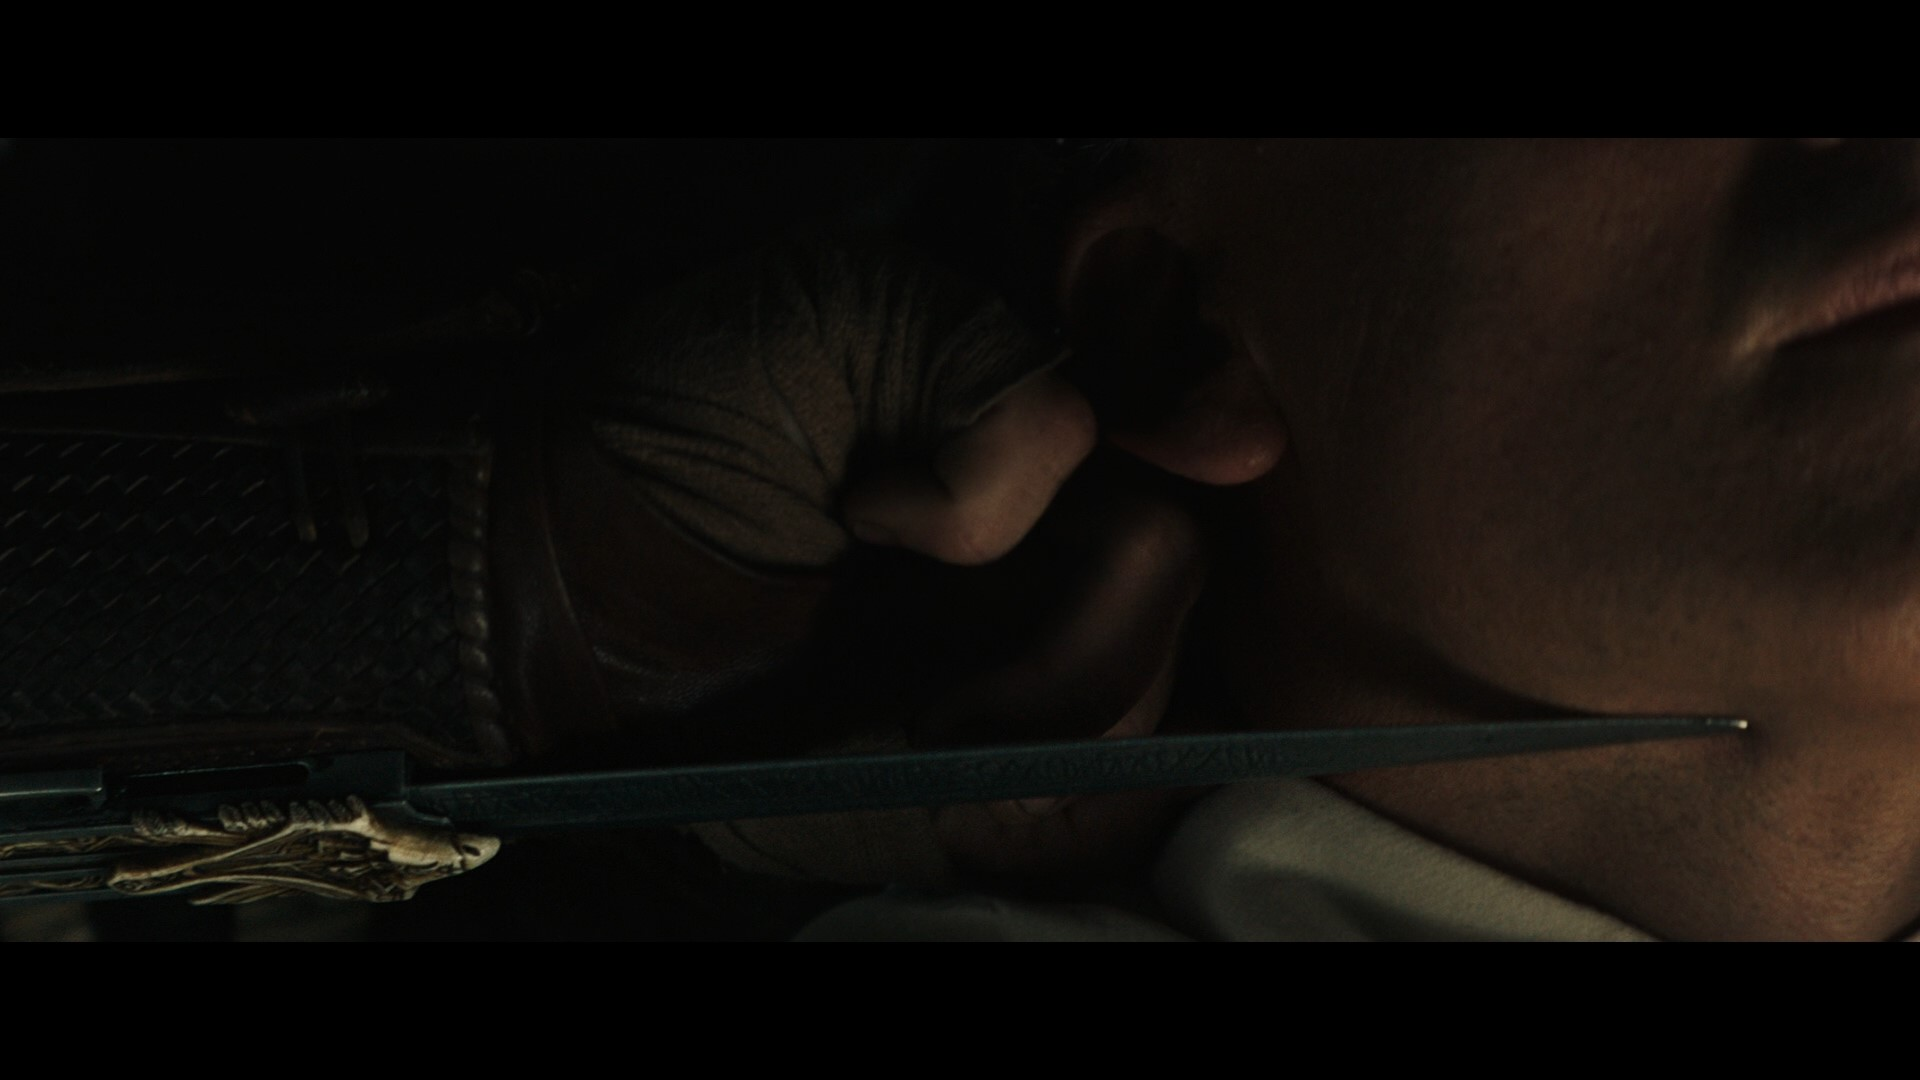 ASSASSIN'S CREED (2016) - Aguilar's (Michael Fassbender) SFX Wristblade - Image 15 of 17